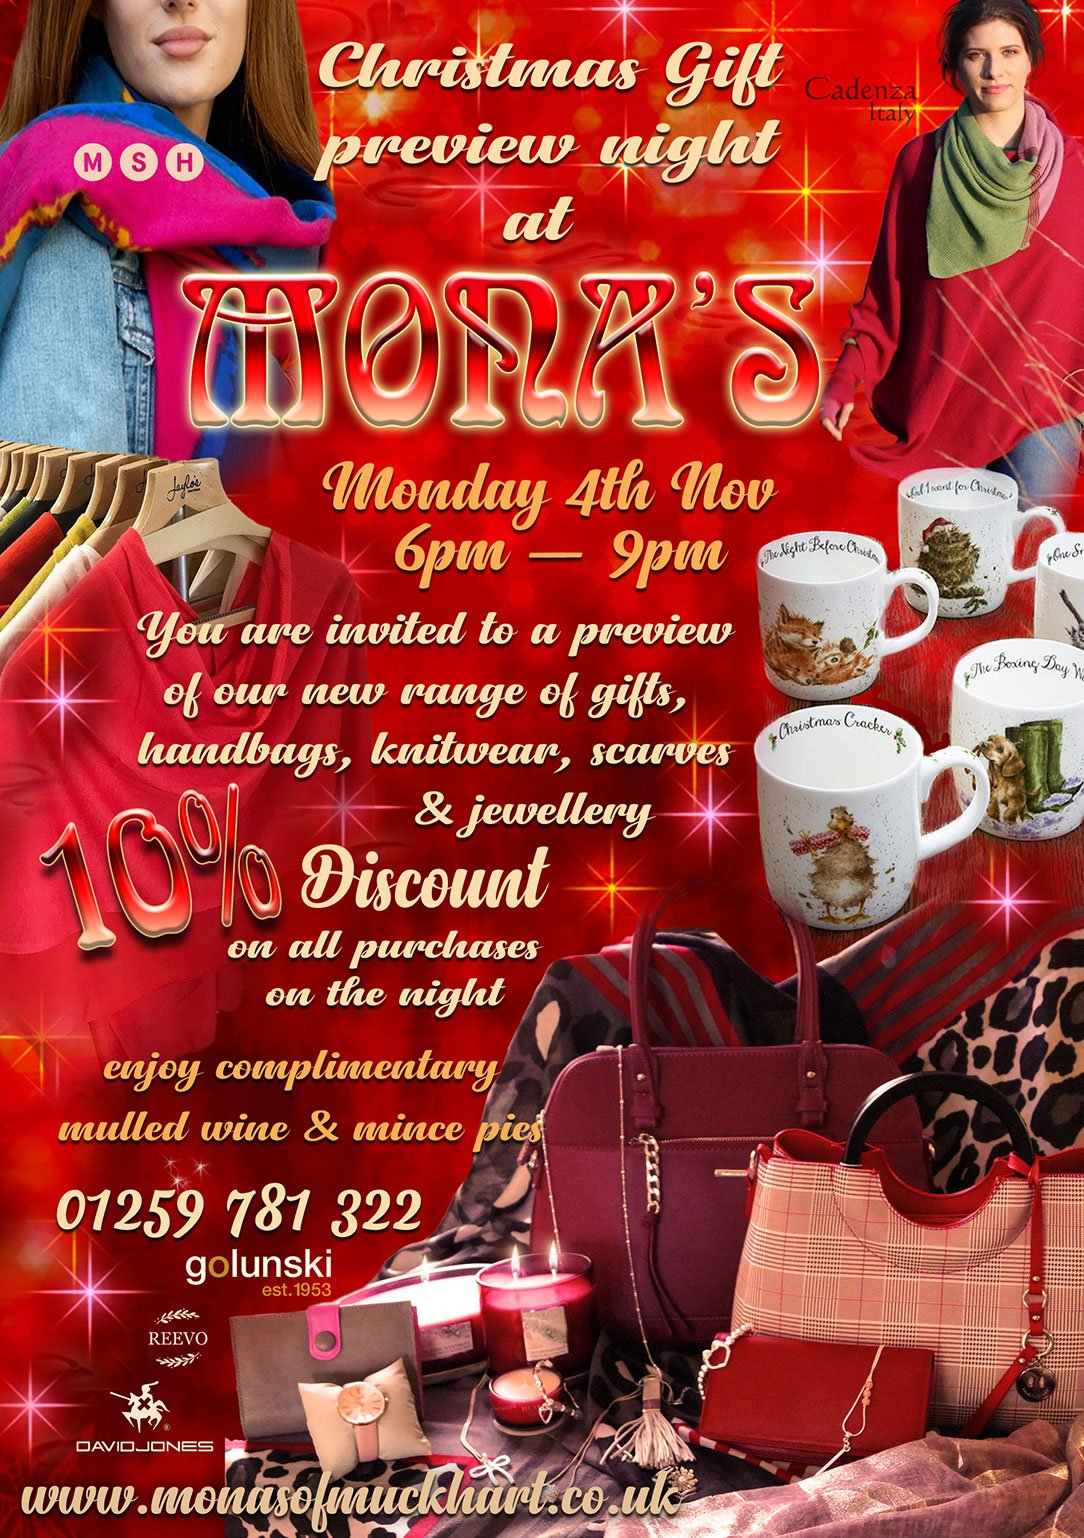 Christmas Gift Preview Night at Mona's of Muckhart